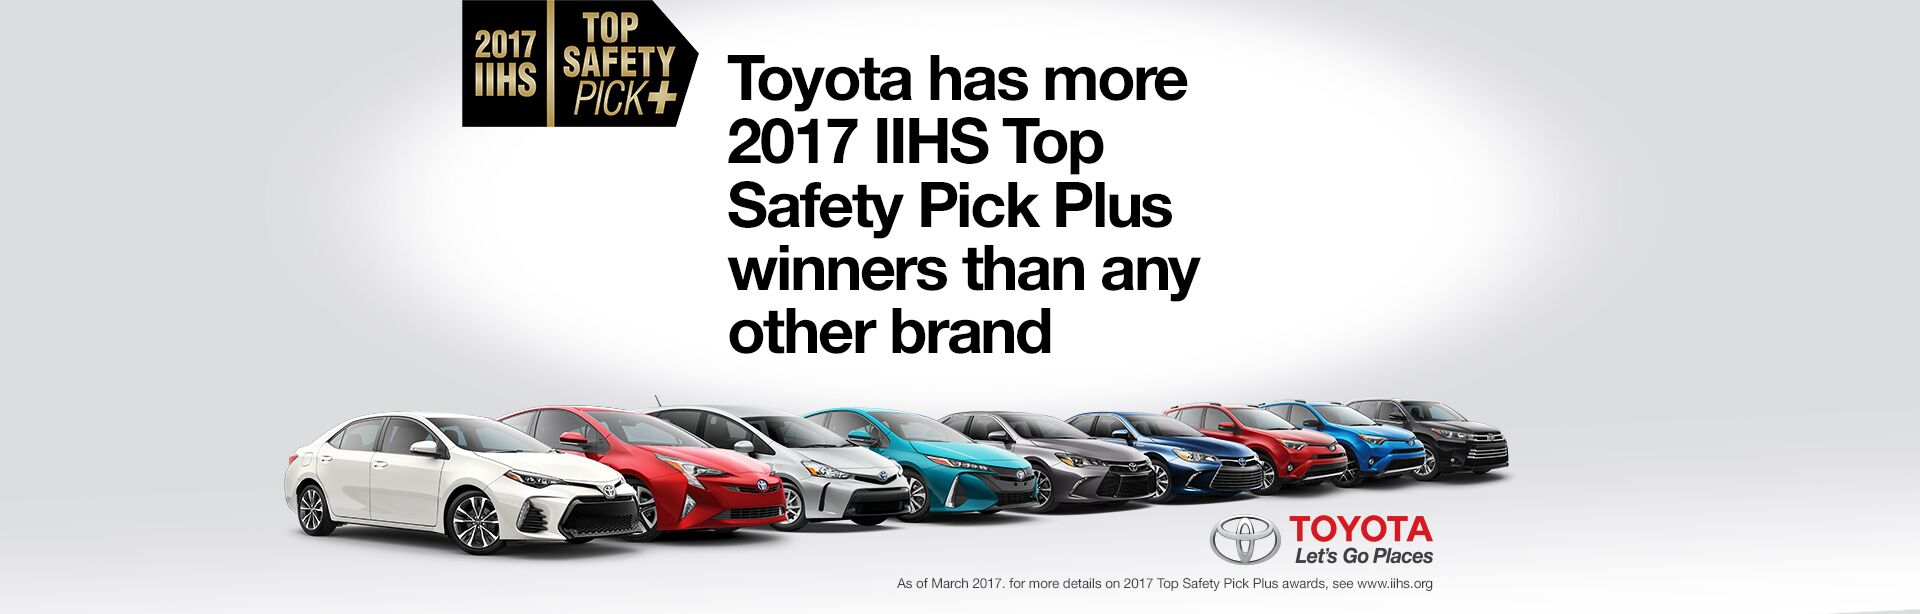 IIHS Top Safety 2017